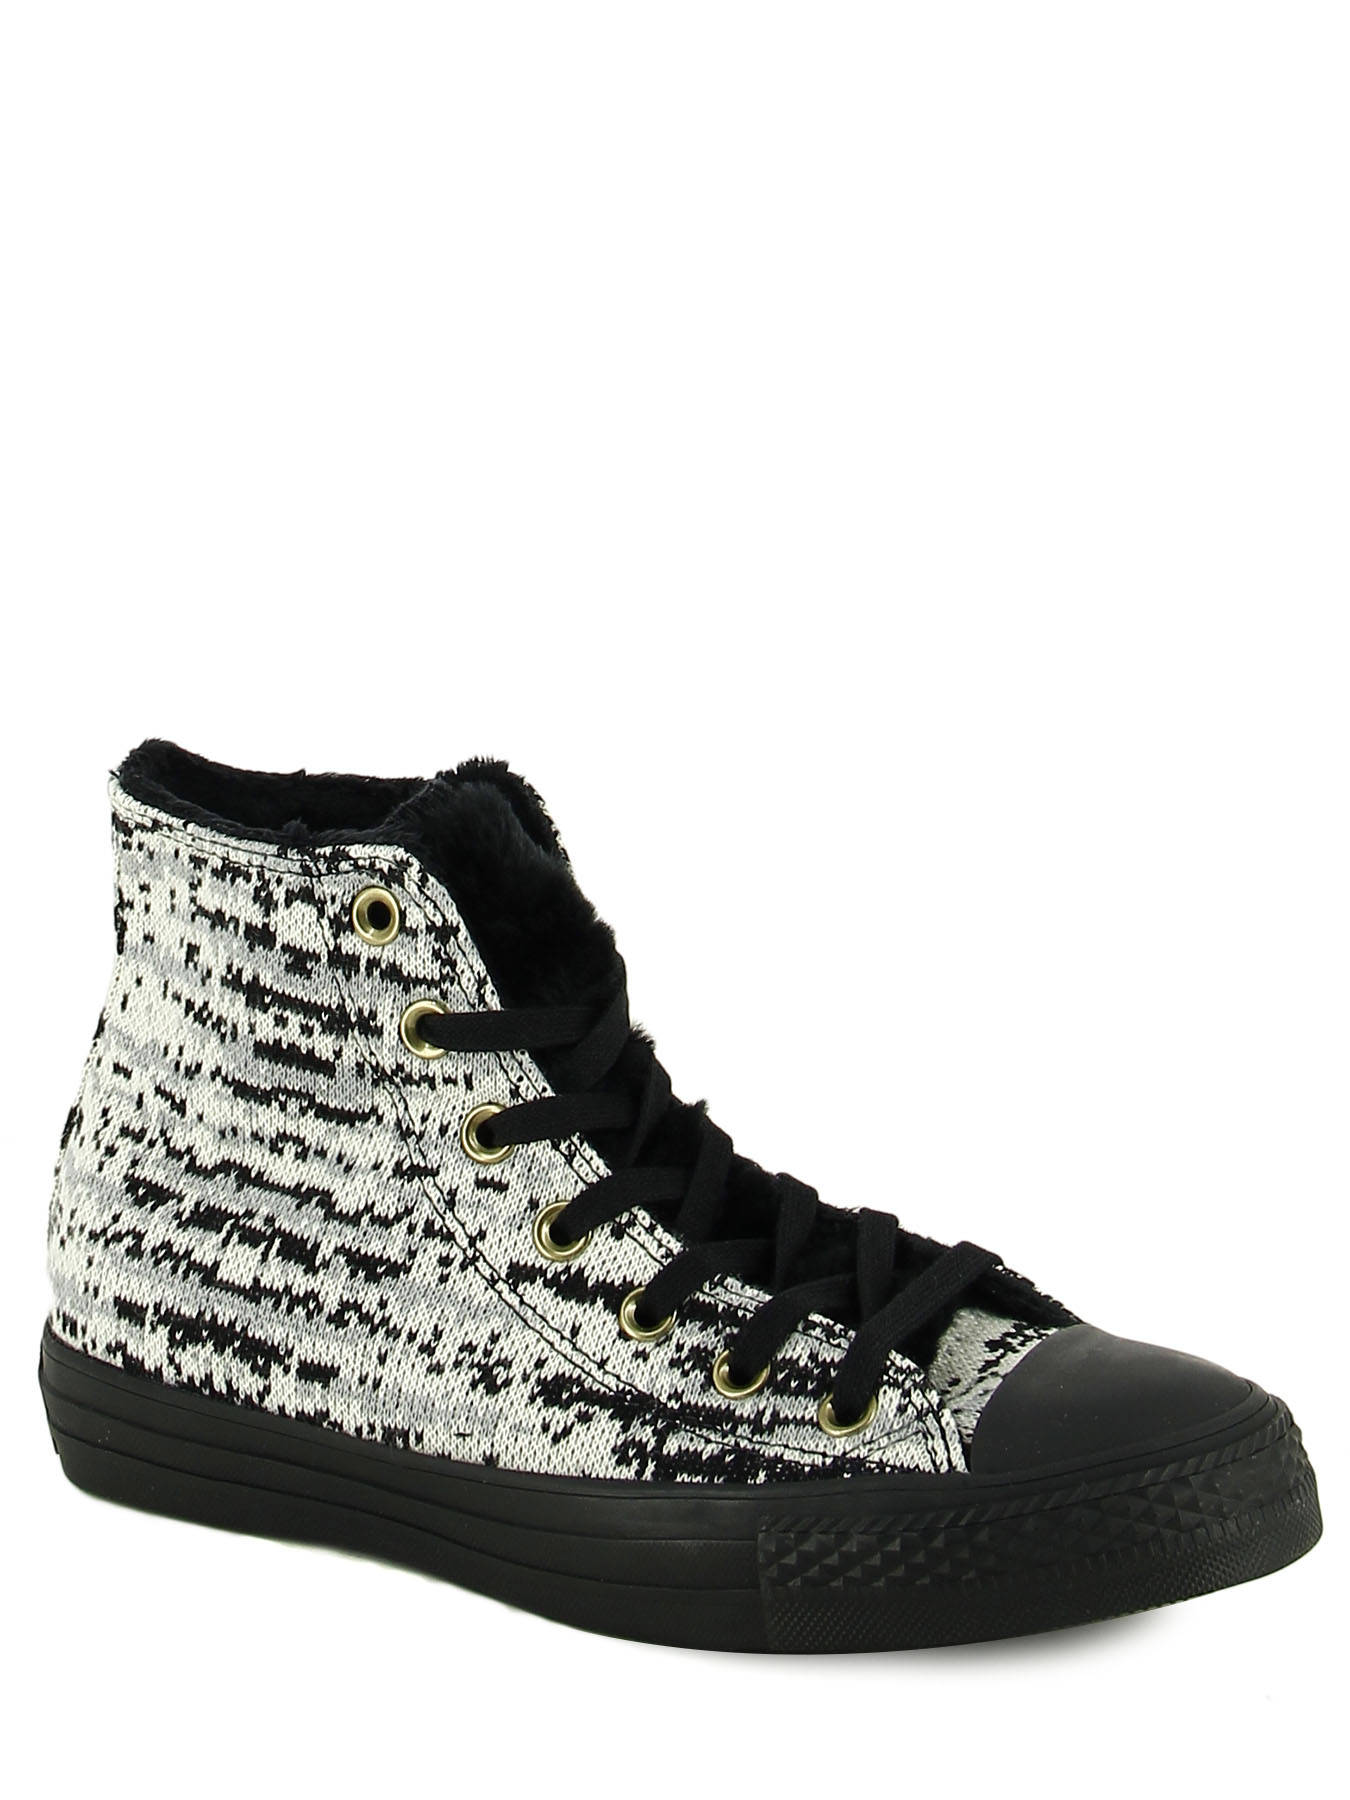 687affec0f8 ... Chuck Taylor All Star Winter Knit Converse Zwart baskets mode 553361C  ...